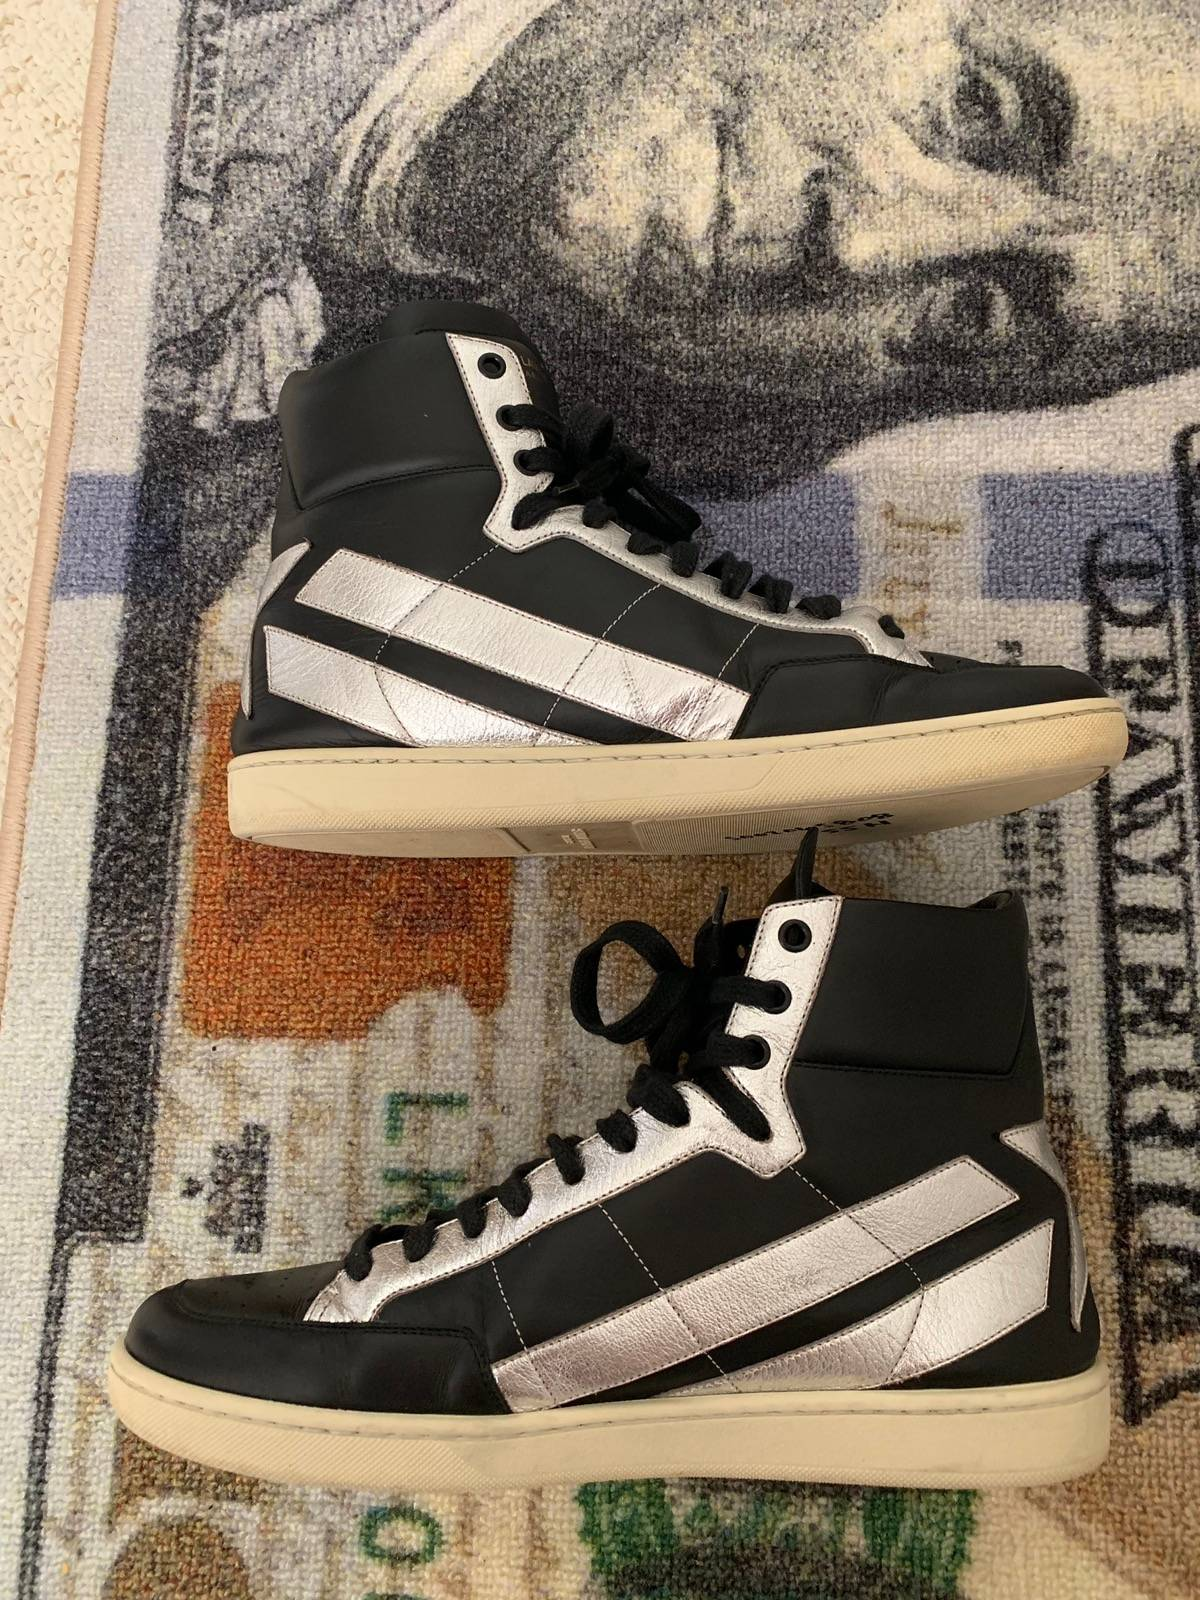 "0467d438cee7 Saint Laurent Paris YSL Court Classic High ""Black"" Size 10 - Hi-Top  Sneakers for Sale - Grailed"